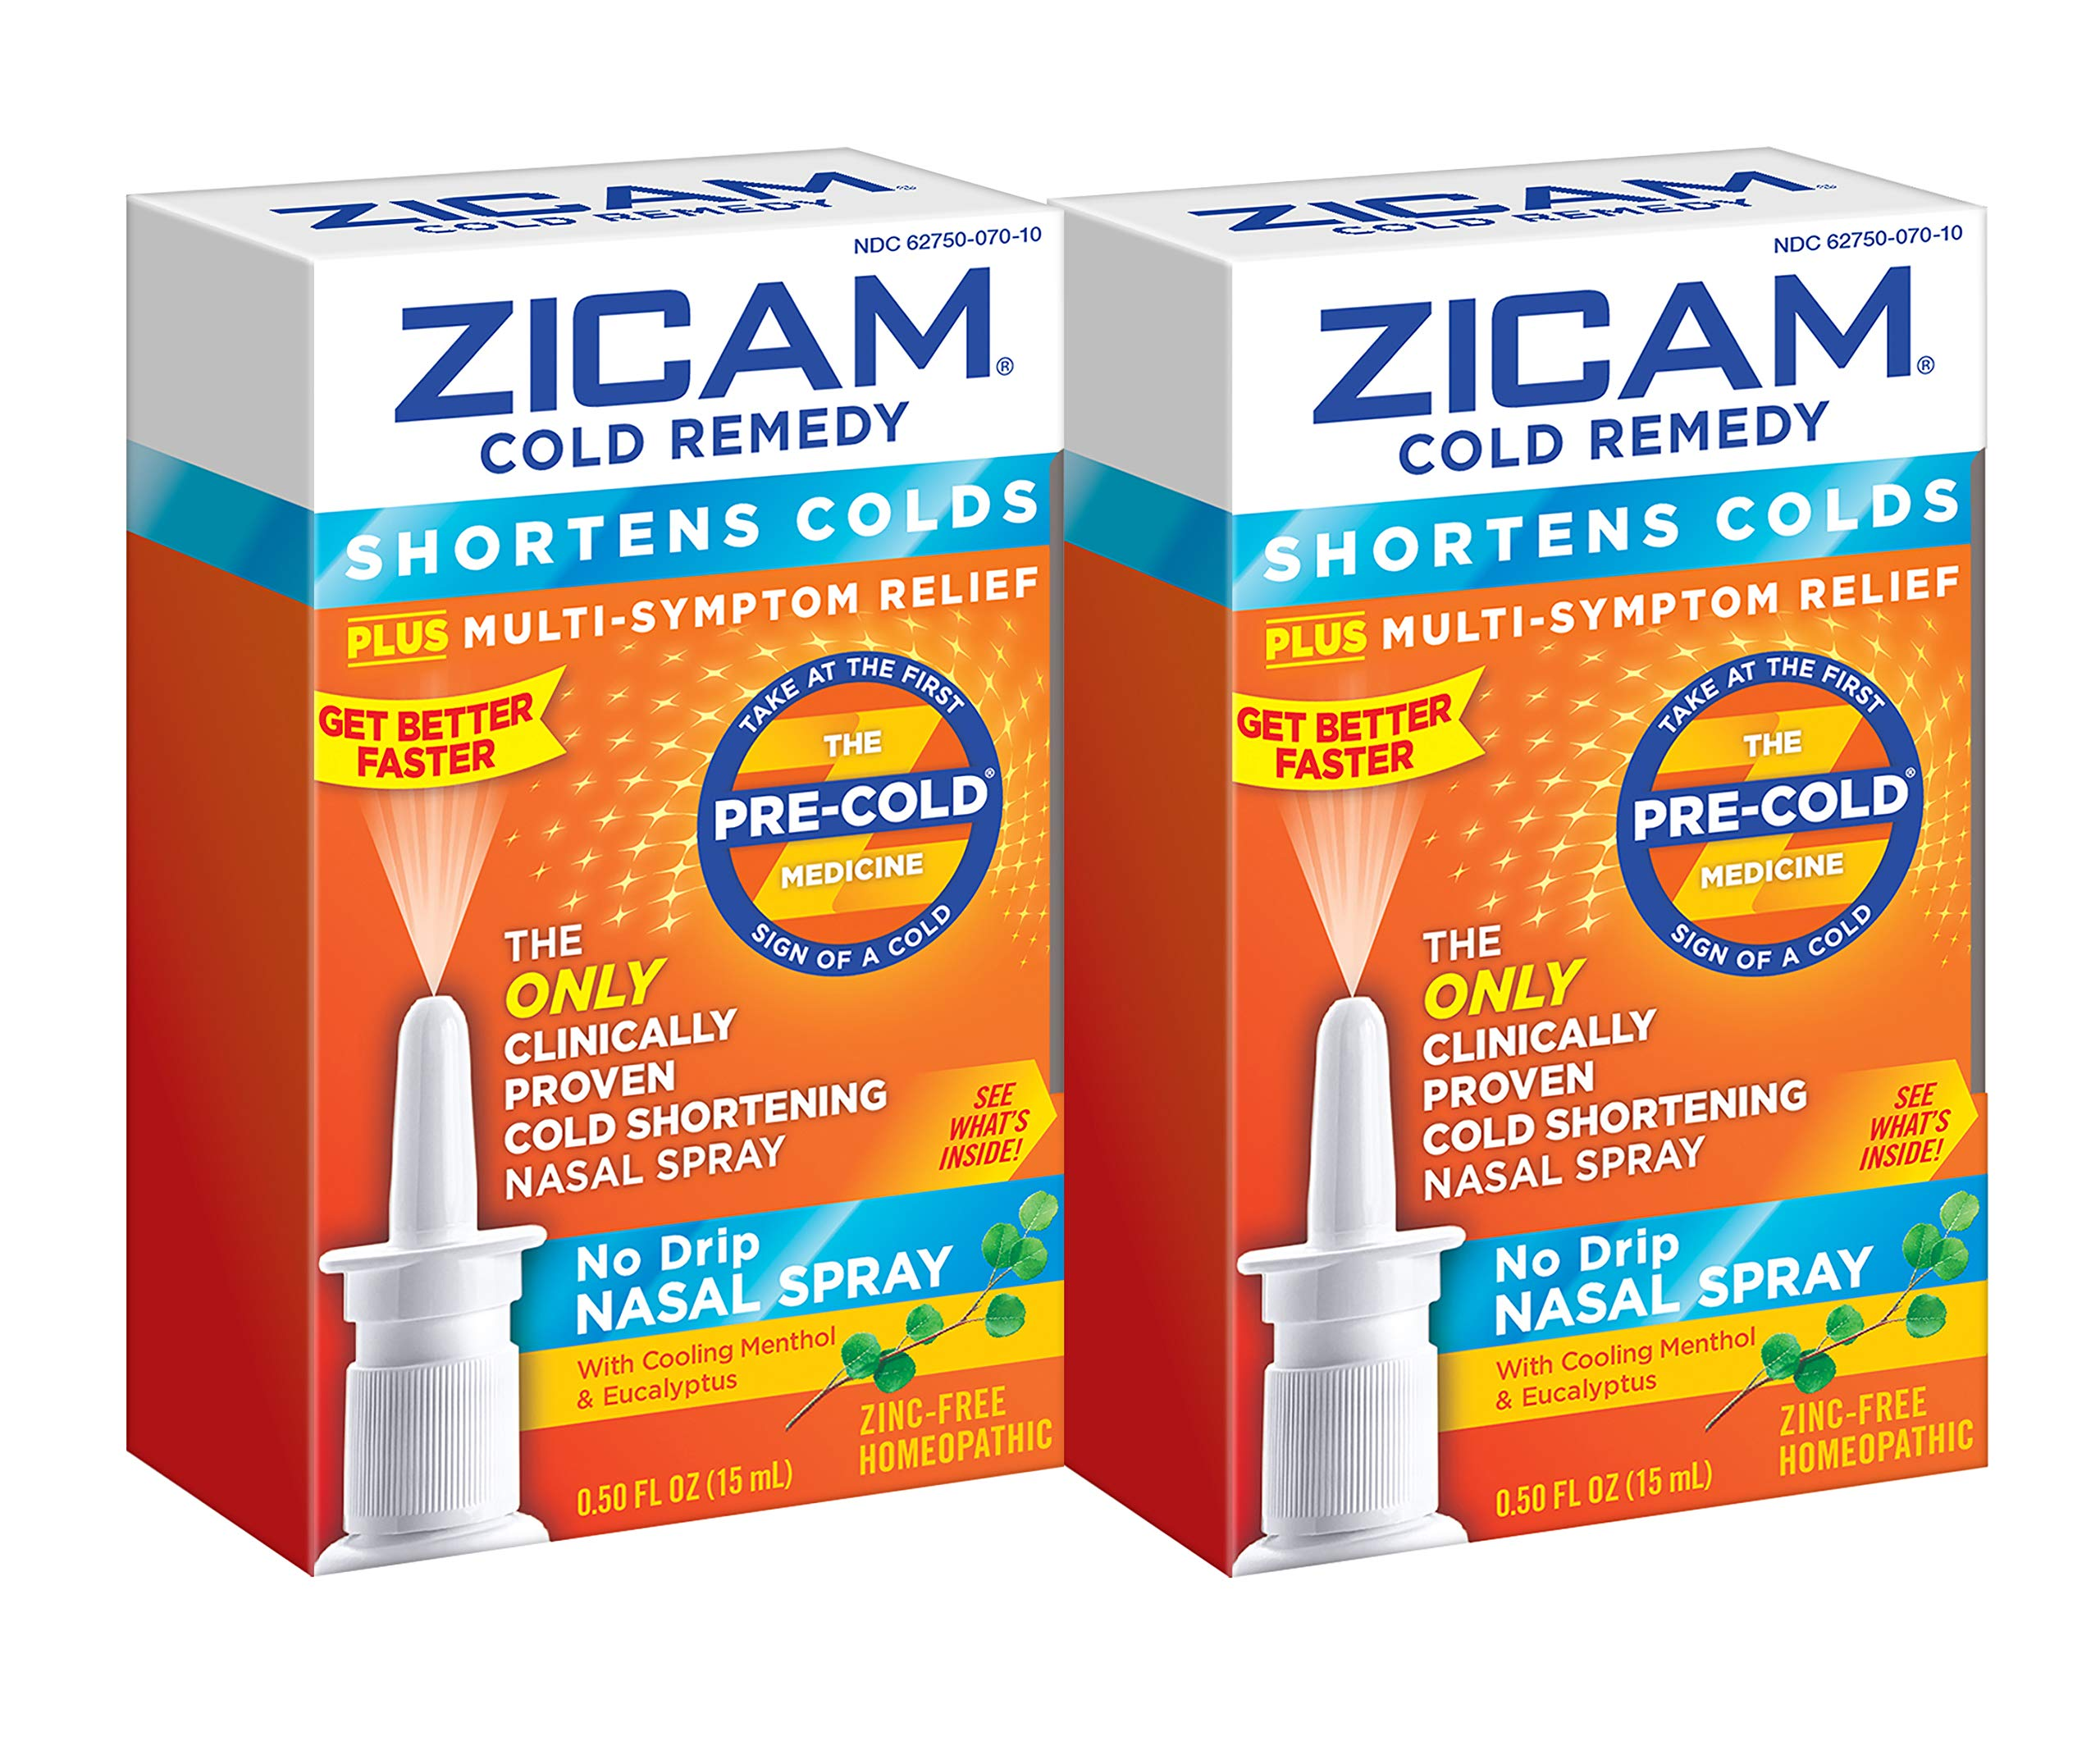 Zicam Cold Remedy No-drip Nasal Spray, 0.5 Fl Oz, Pack of 2